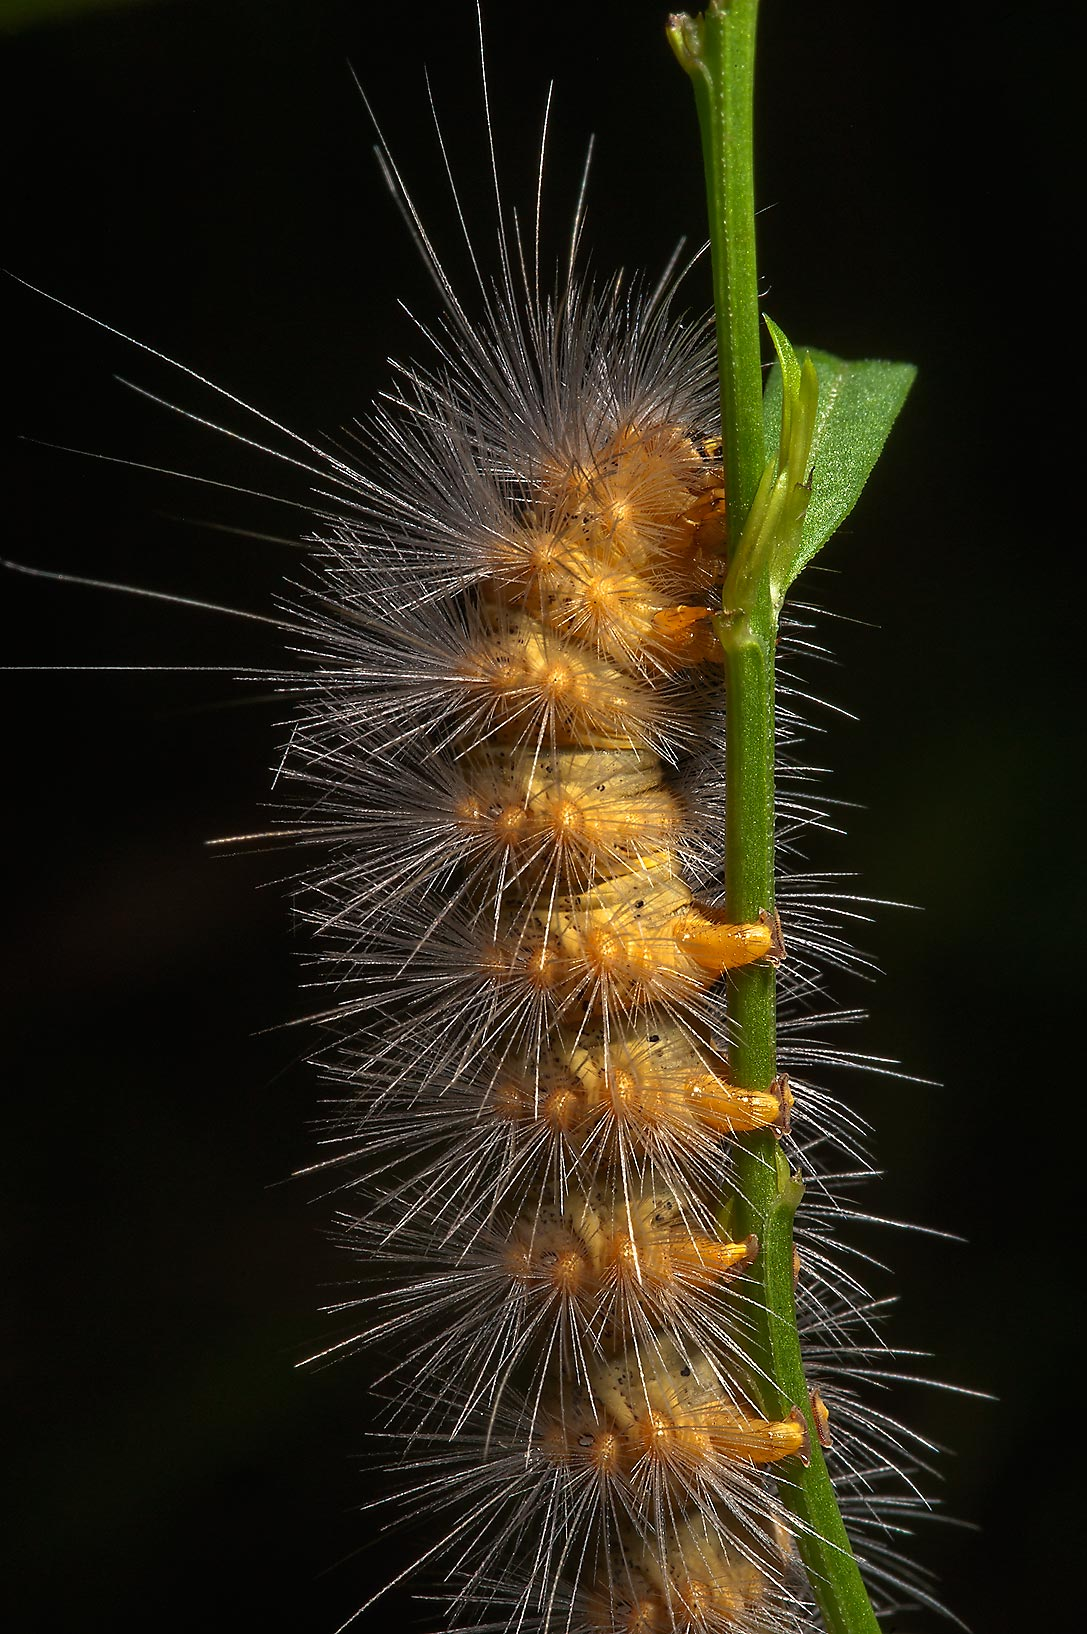 Brown caterpillar in Washington-on-the-Brazos State Historic Site. Washington, Texas